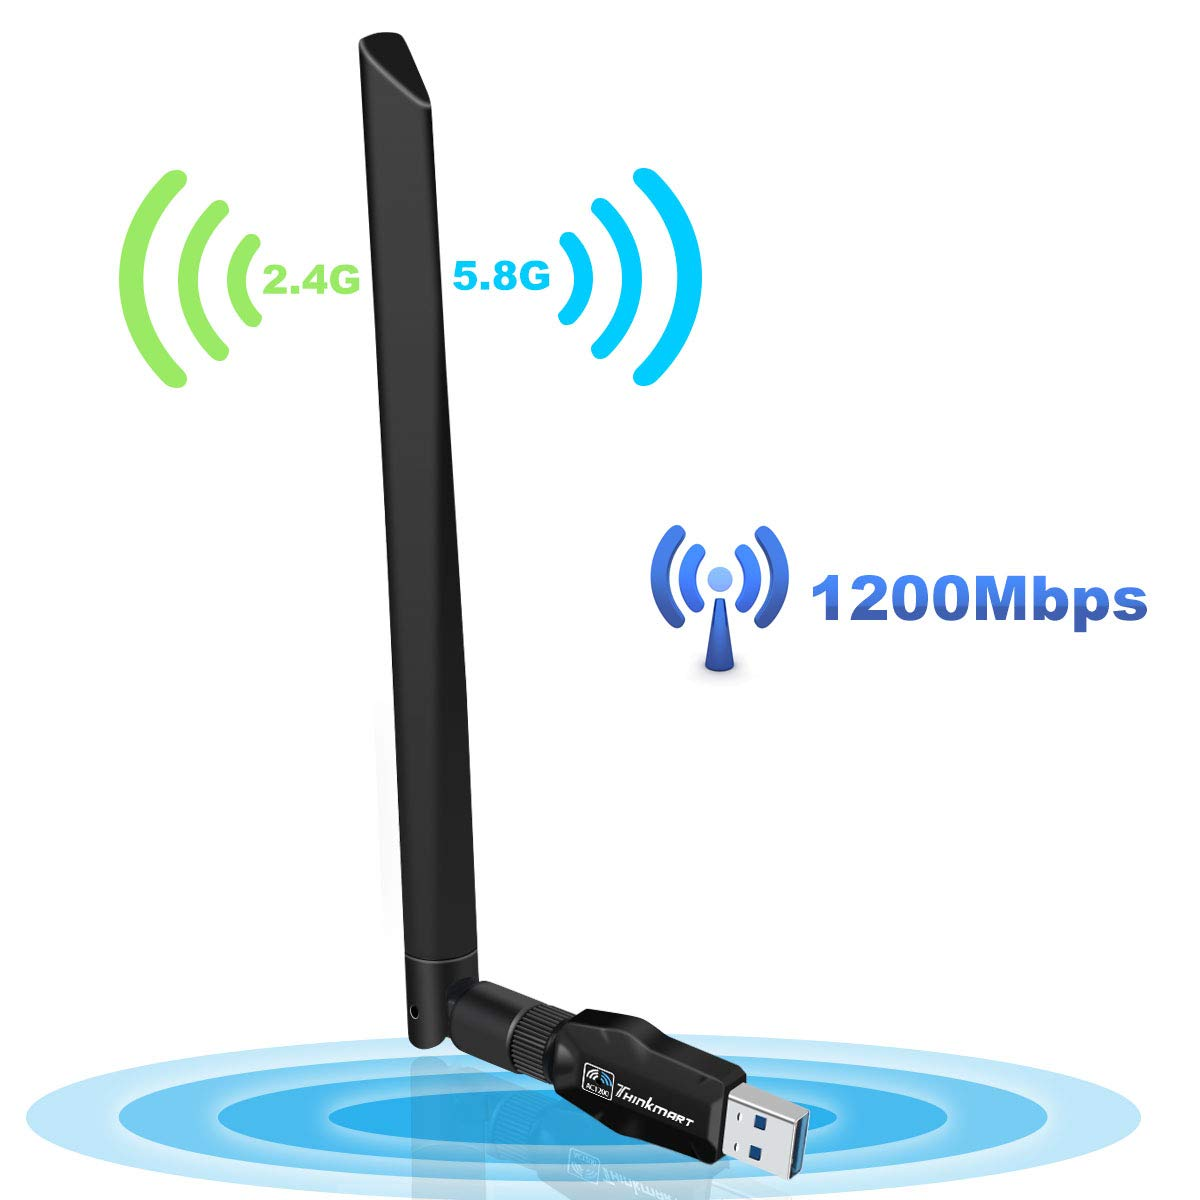 USB WiFi Adapter 1200Mbps, USB 3.0 Wireless Network Adapter Dual Band 2.4GHz/300Mbps+5GHz/867Mbps for Desktop Laptop Win7/8/8.1/10/Mac 10.4-10.13 by Thinkmart